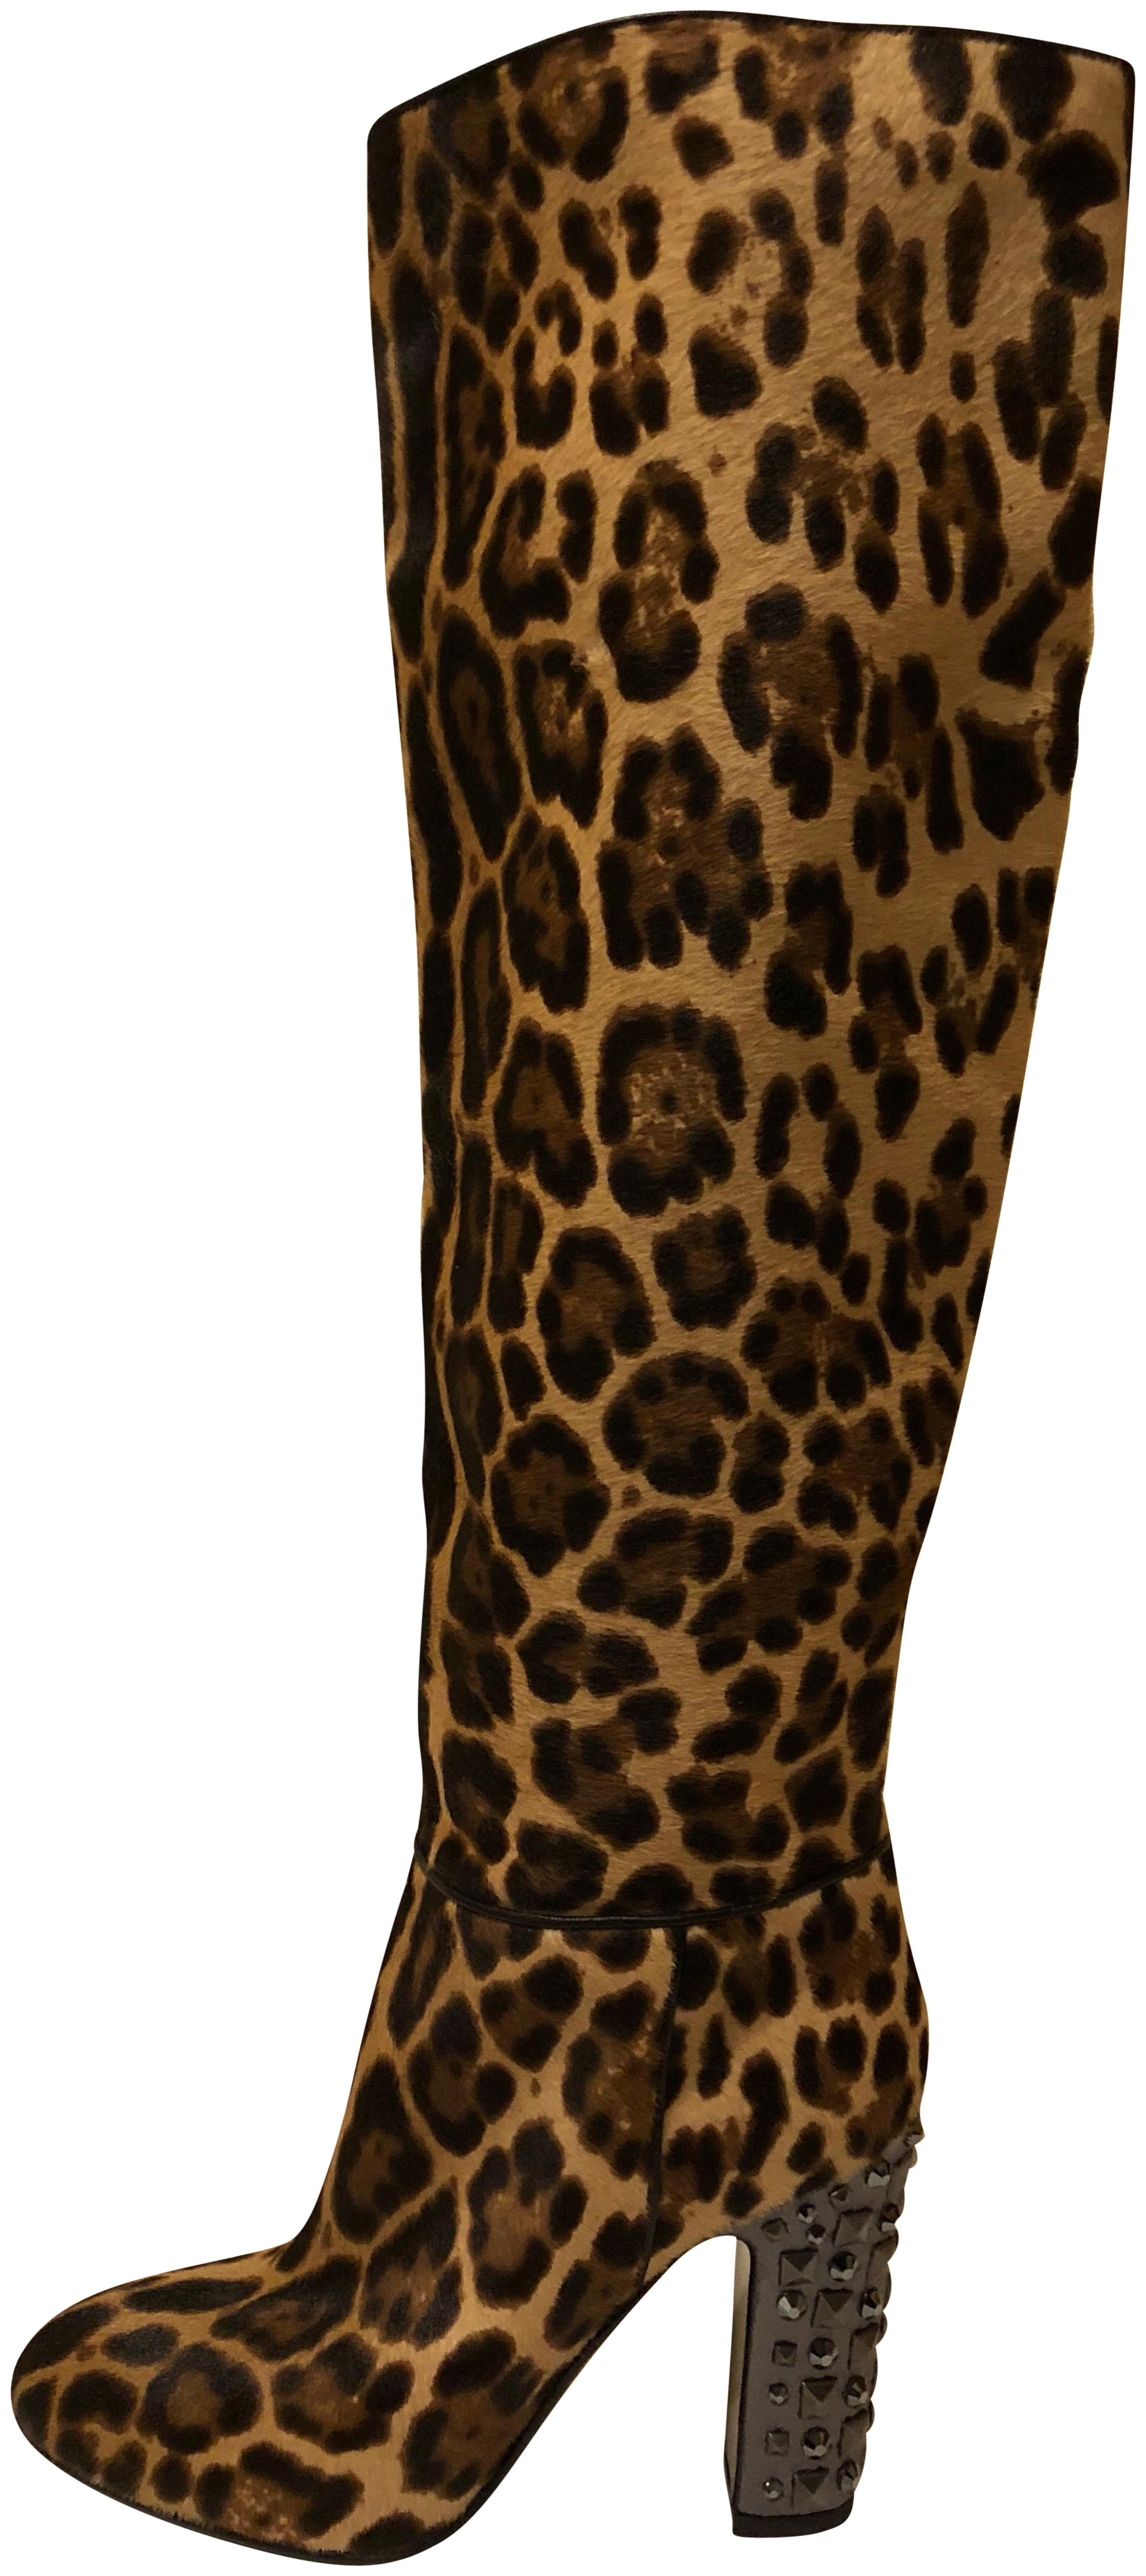 c1596e057 Dolce Gabbana Dolce Gabbana Dolce Gabbana New Leopard Pony Hair Knee  Studded Heel High Leather Boots Booties Size